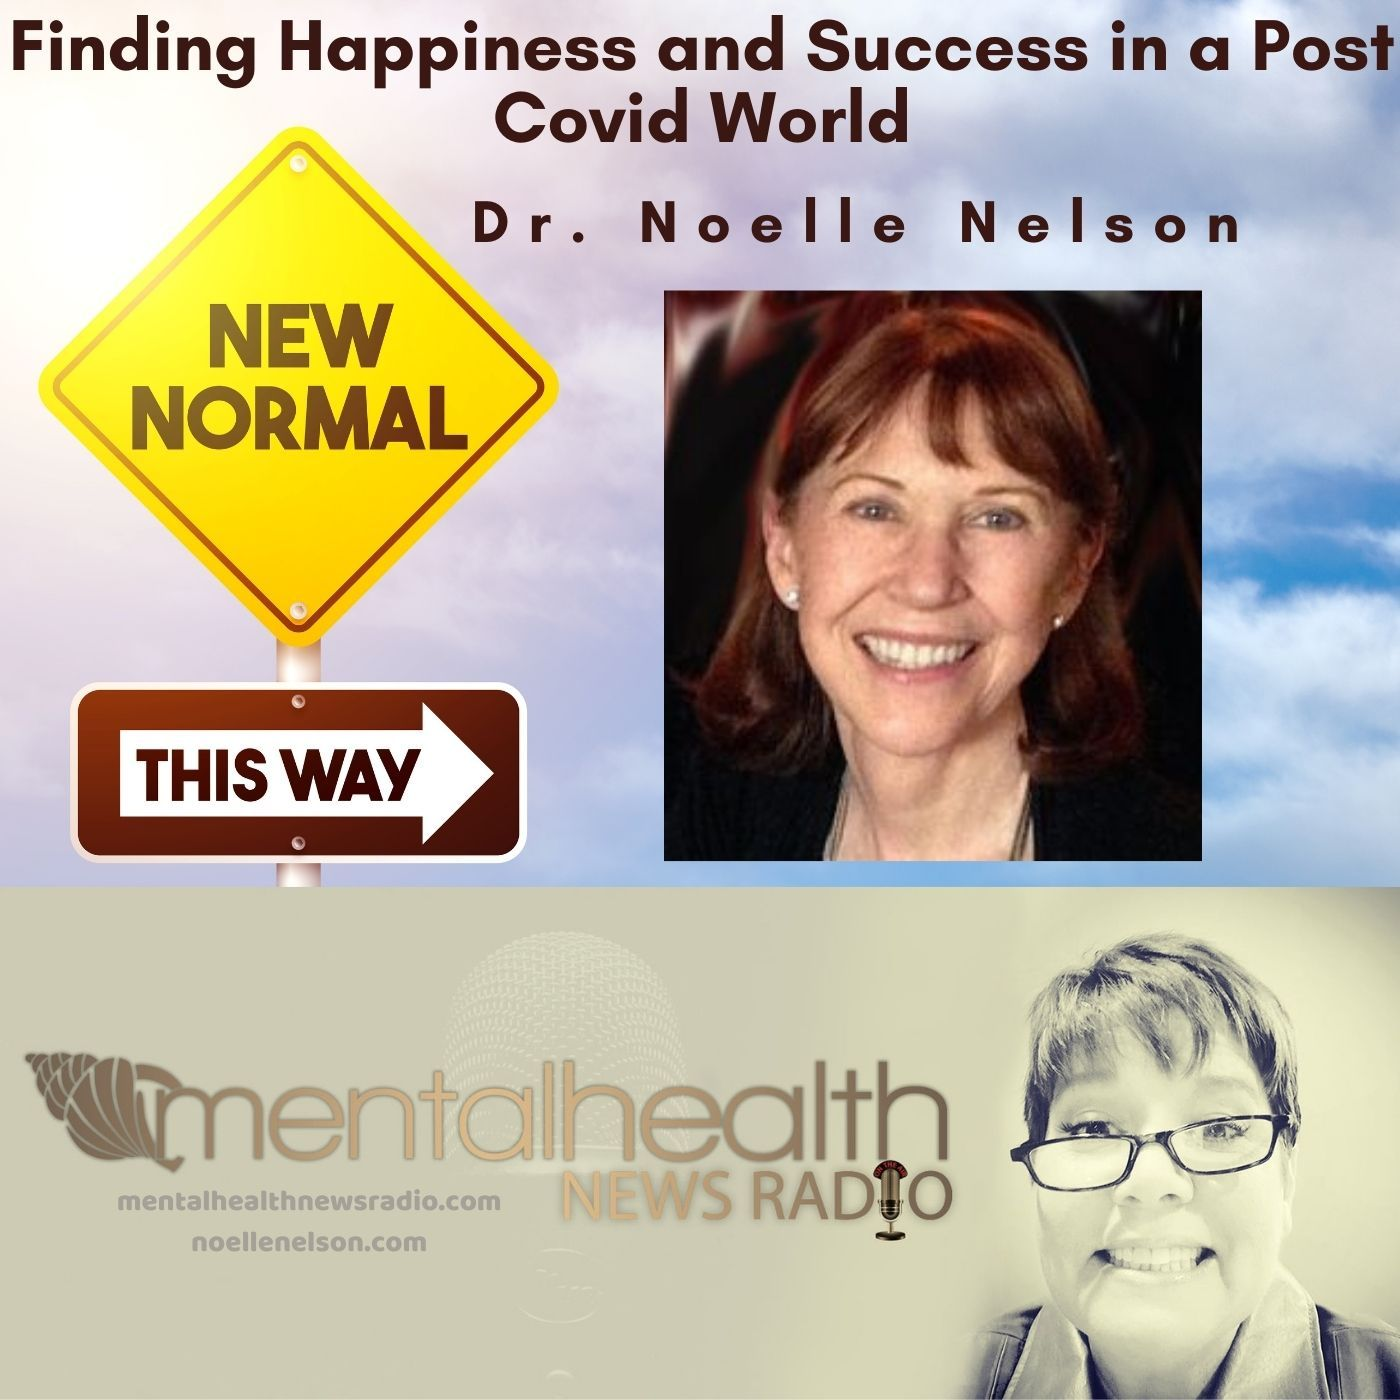 Mental Health News Radio - Finding Happiness and Success in a Post Covid World with Dr. Noelle Nelson